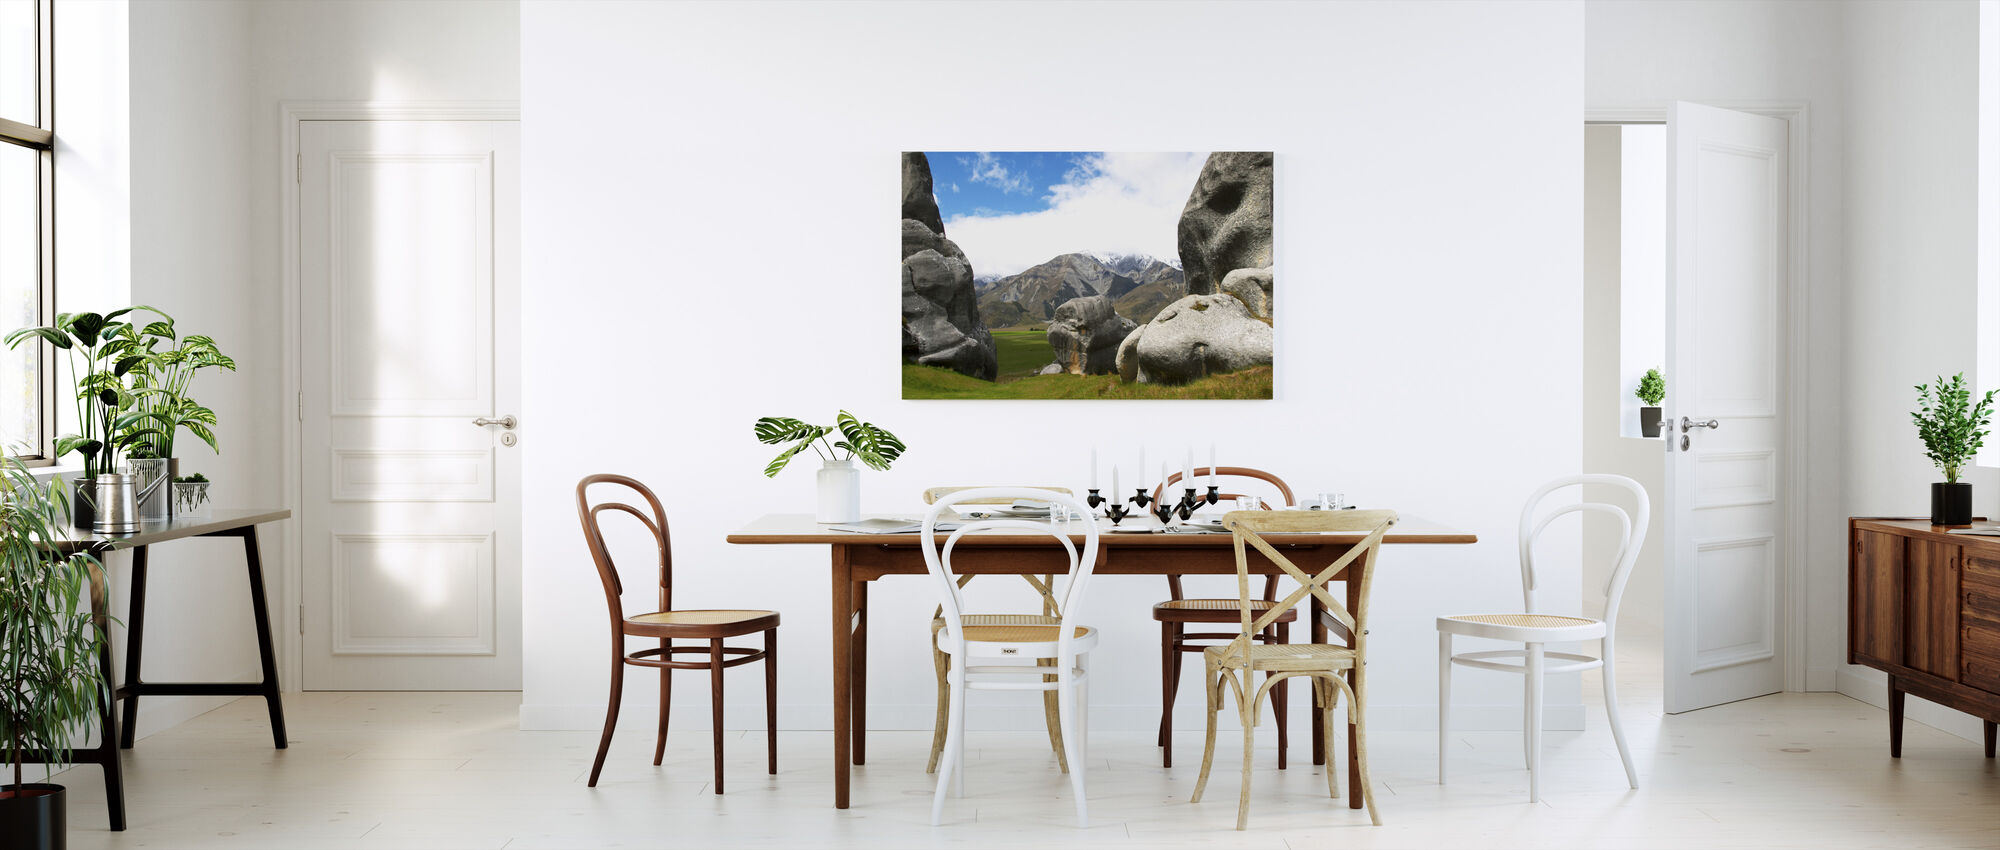 Nz View - Canvas print - Kitchen